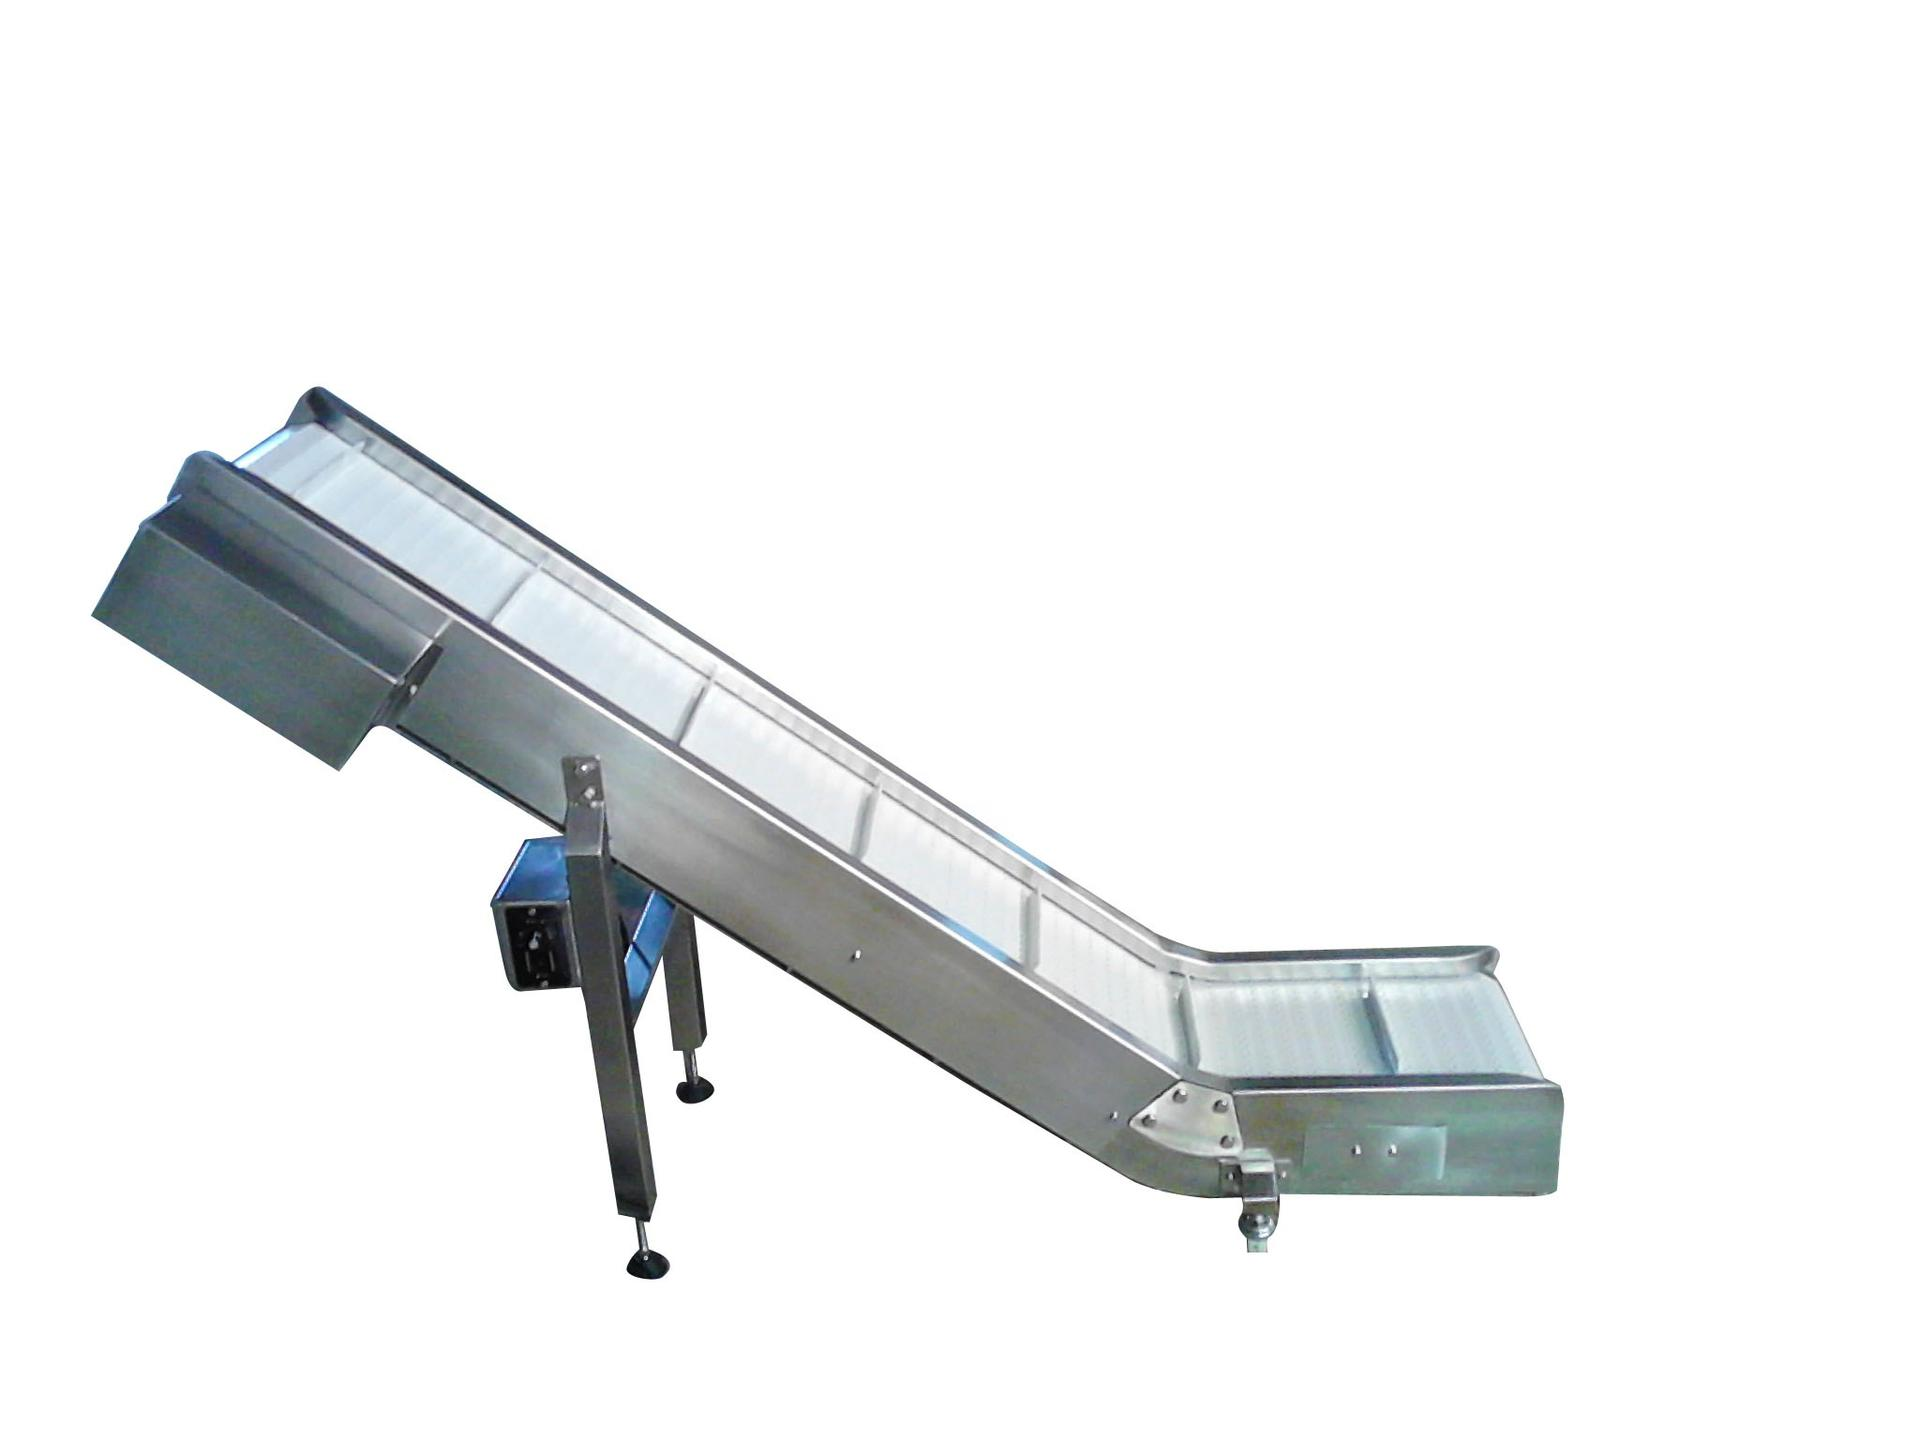 2020 Top selling products vegetable packaging machine